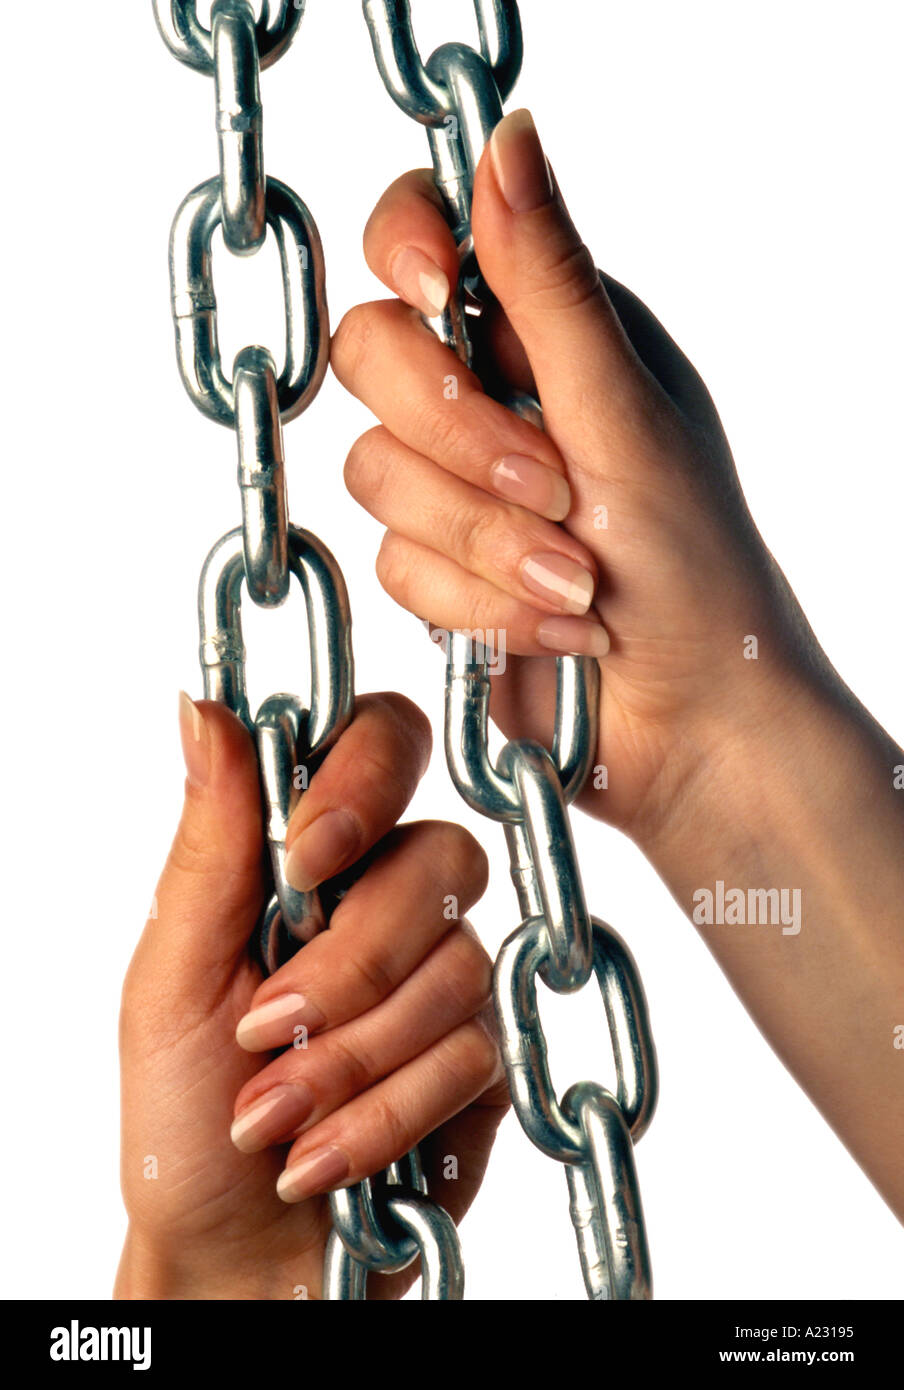 caucasian female hands pulling chain - Stock Image